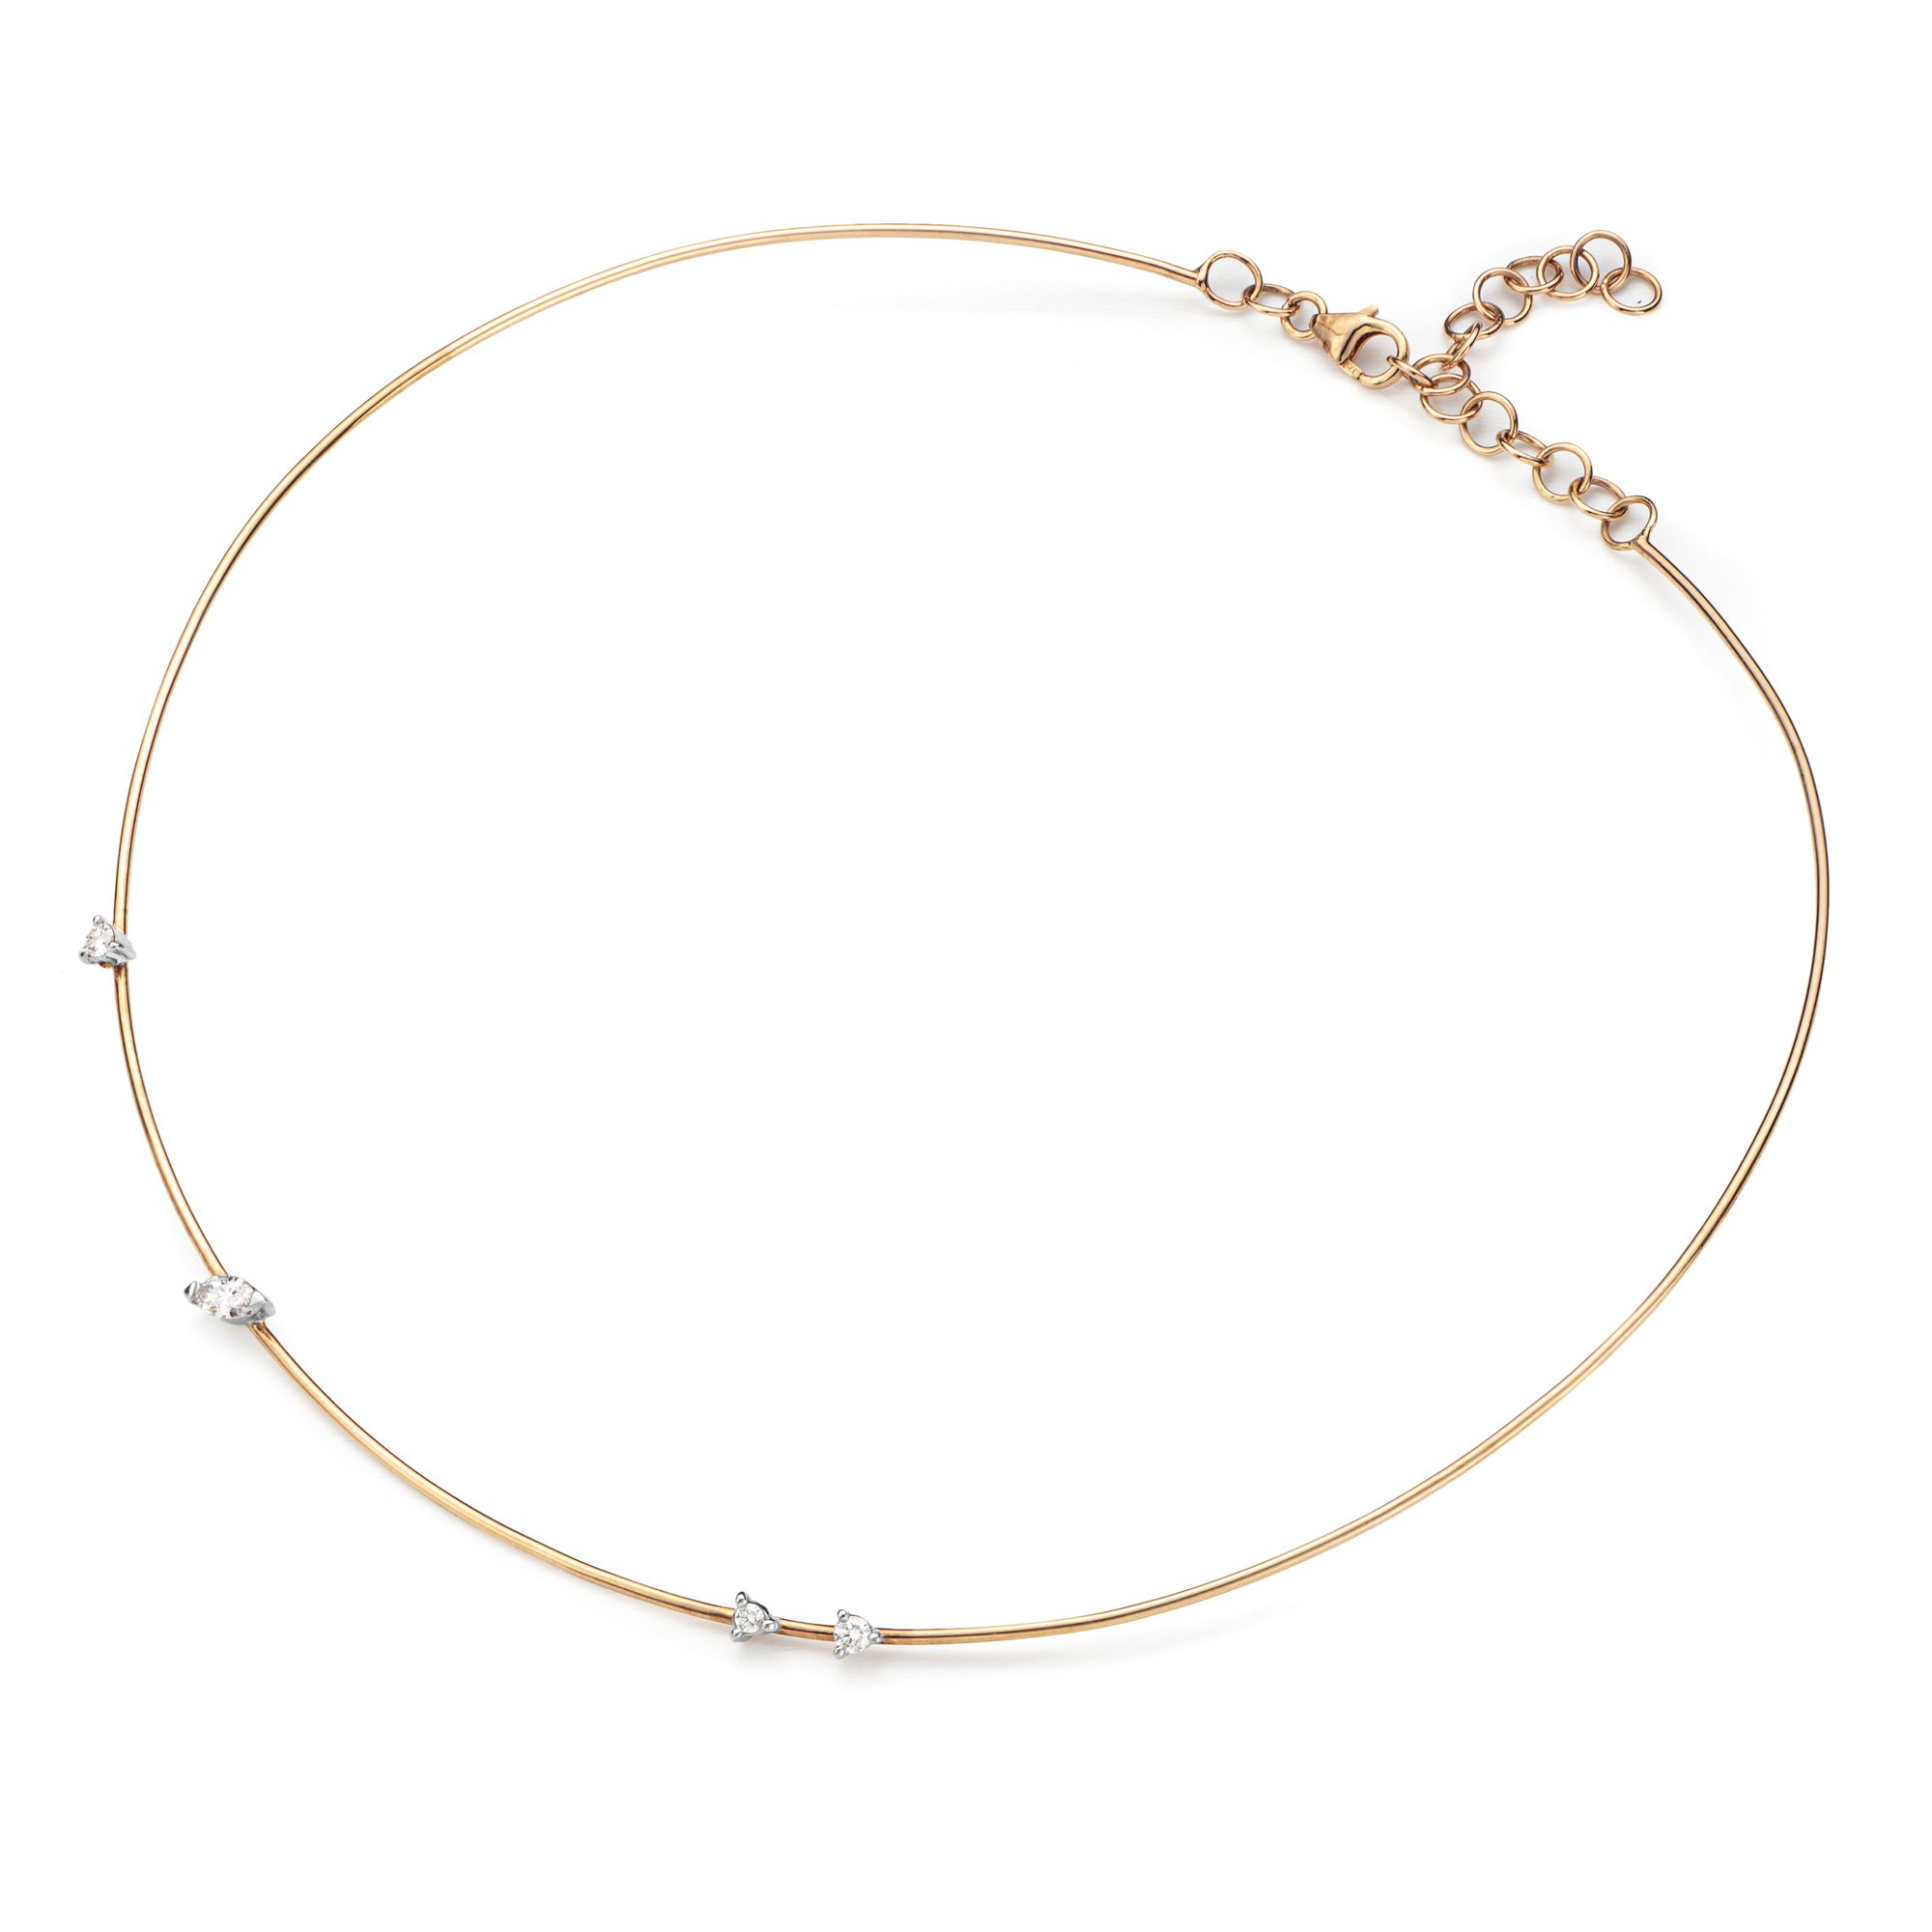 Pink gold 'Balance' necklace 9kt pink gold necklace with diamonds